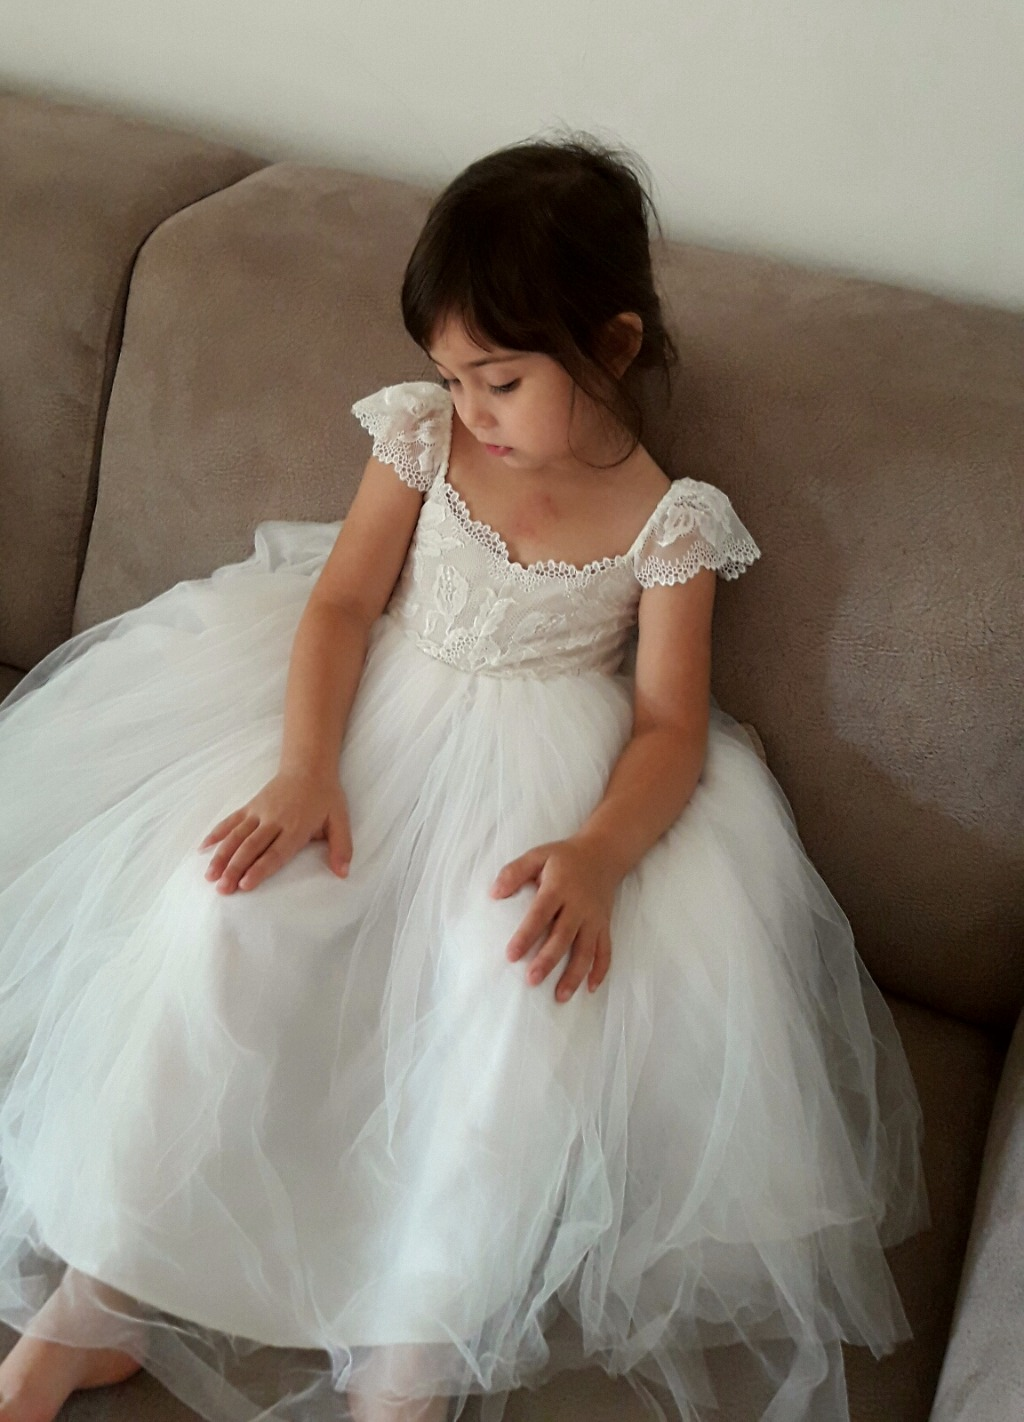 French Lace and Silk like soft tulle dress for a flower girl